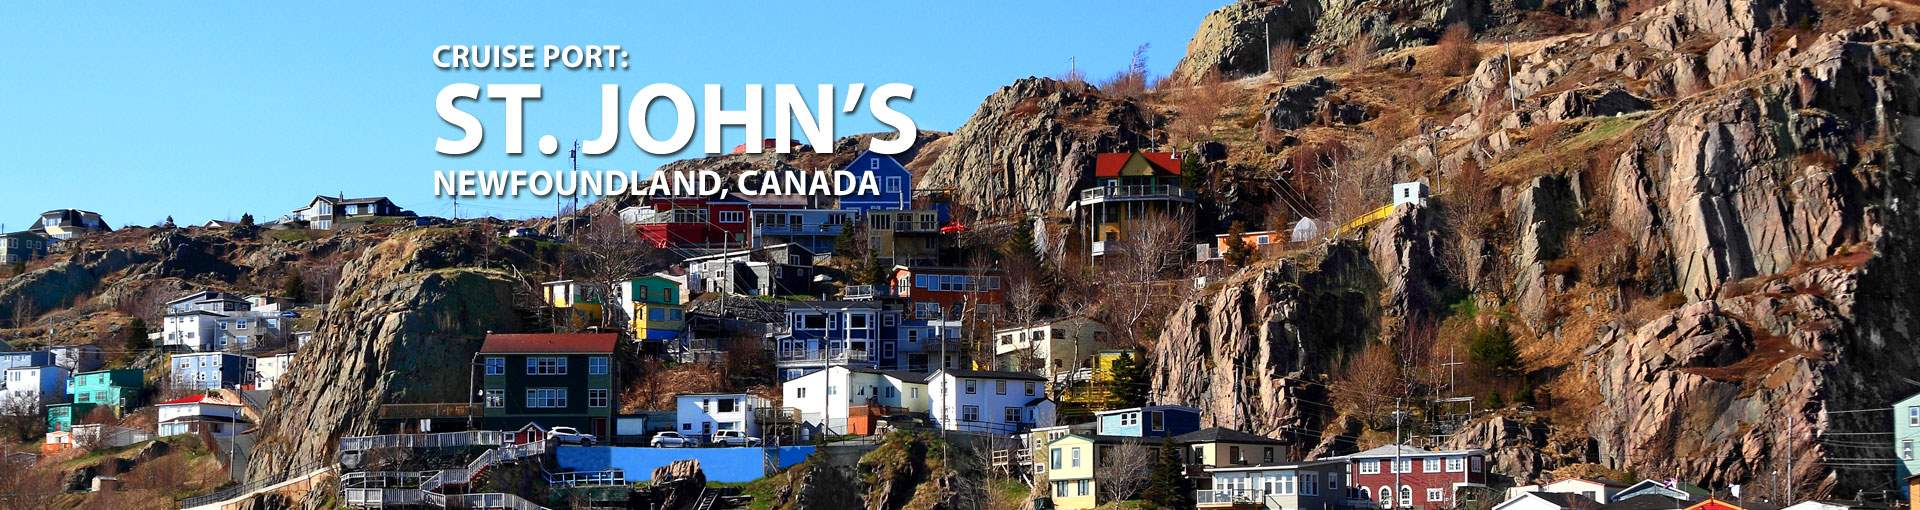 Cruises to St. Johns, Newfoundland